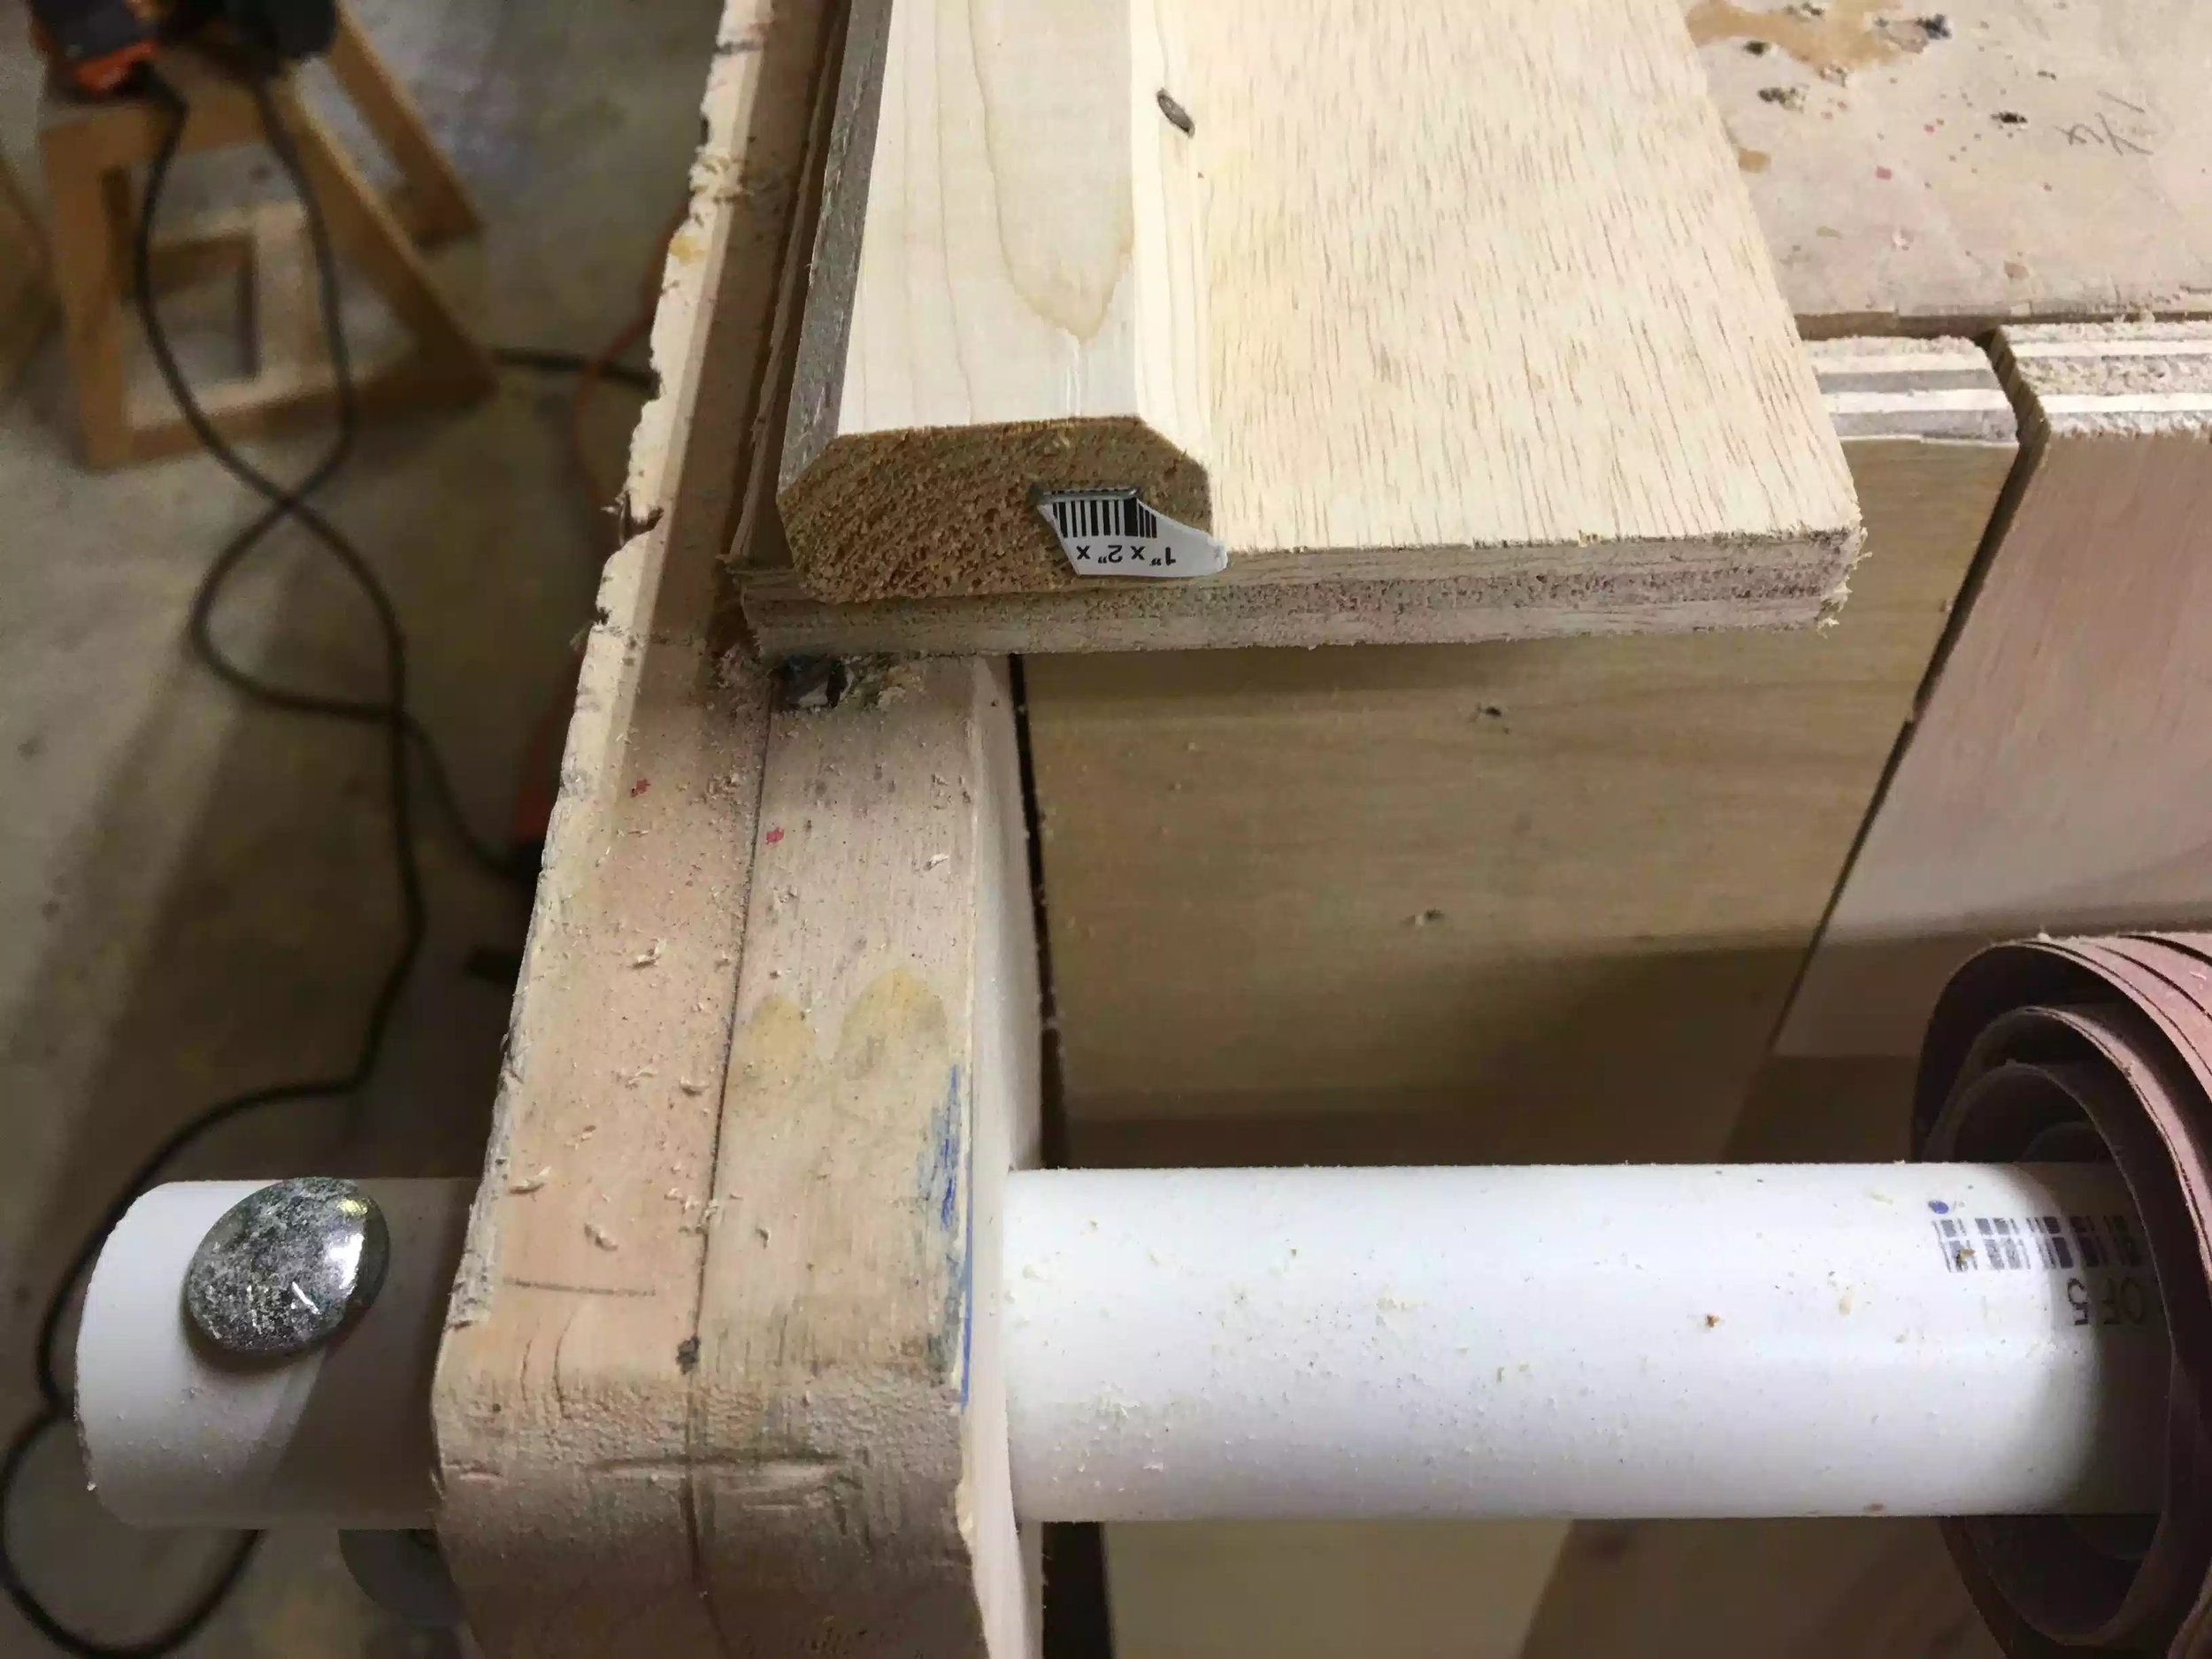 Here you can see the chamfer profile on the end of the 8' length, next to the miter saw station to cut them all down.